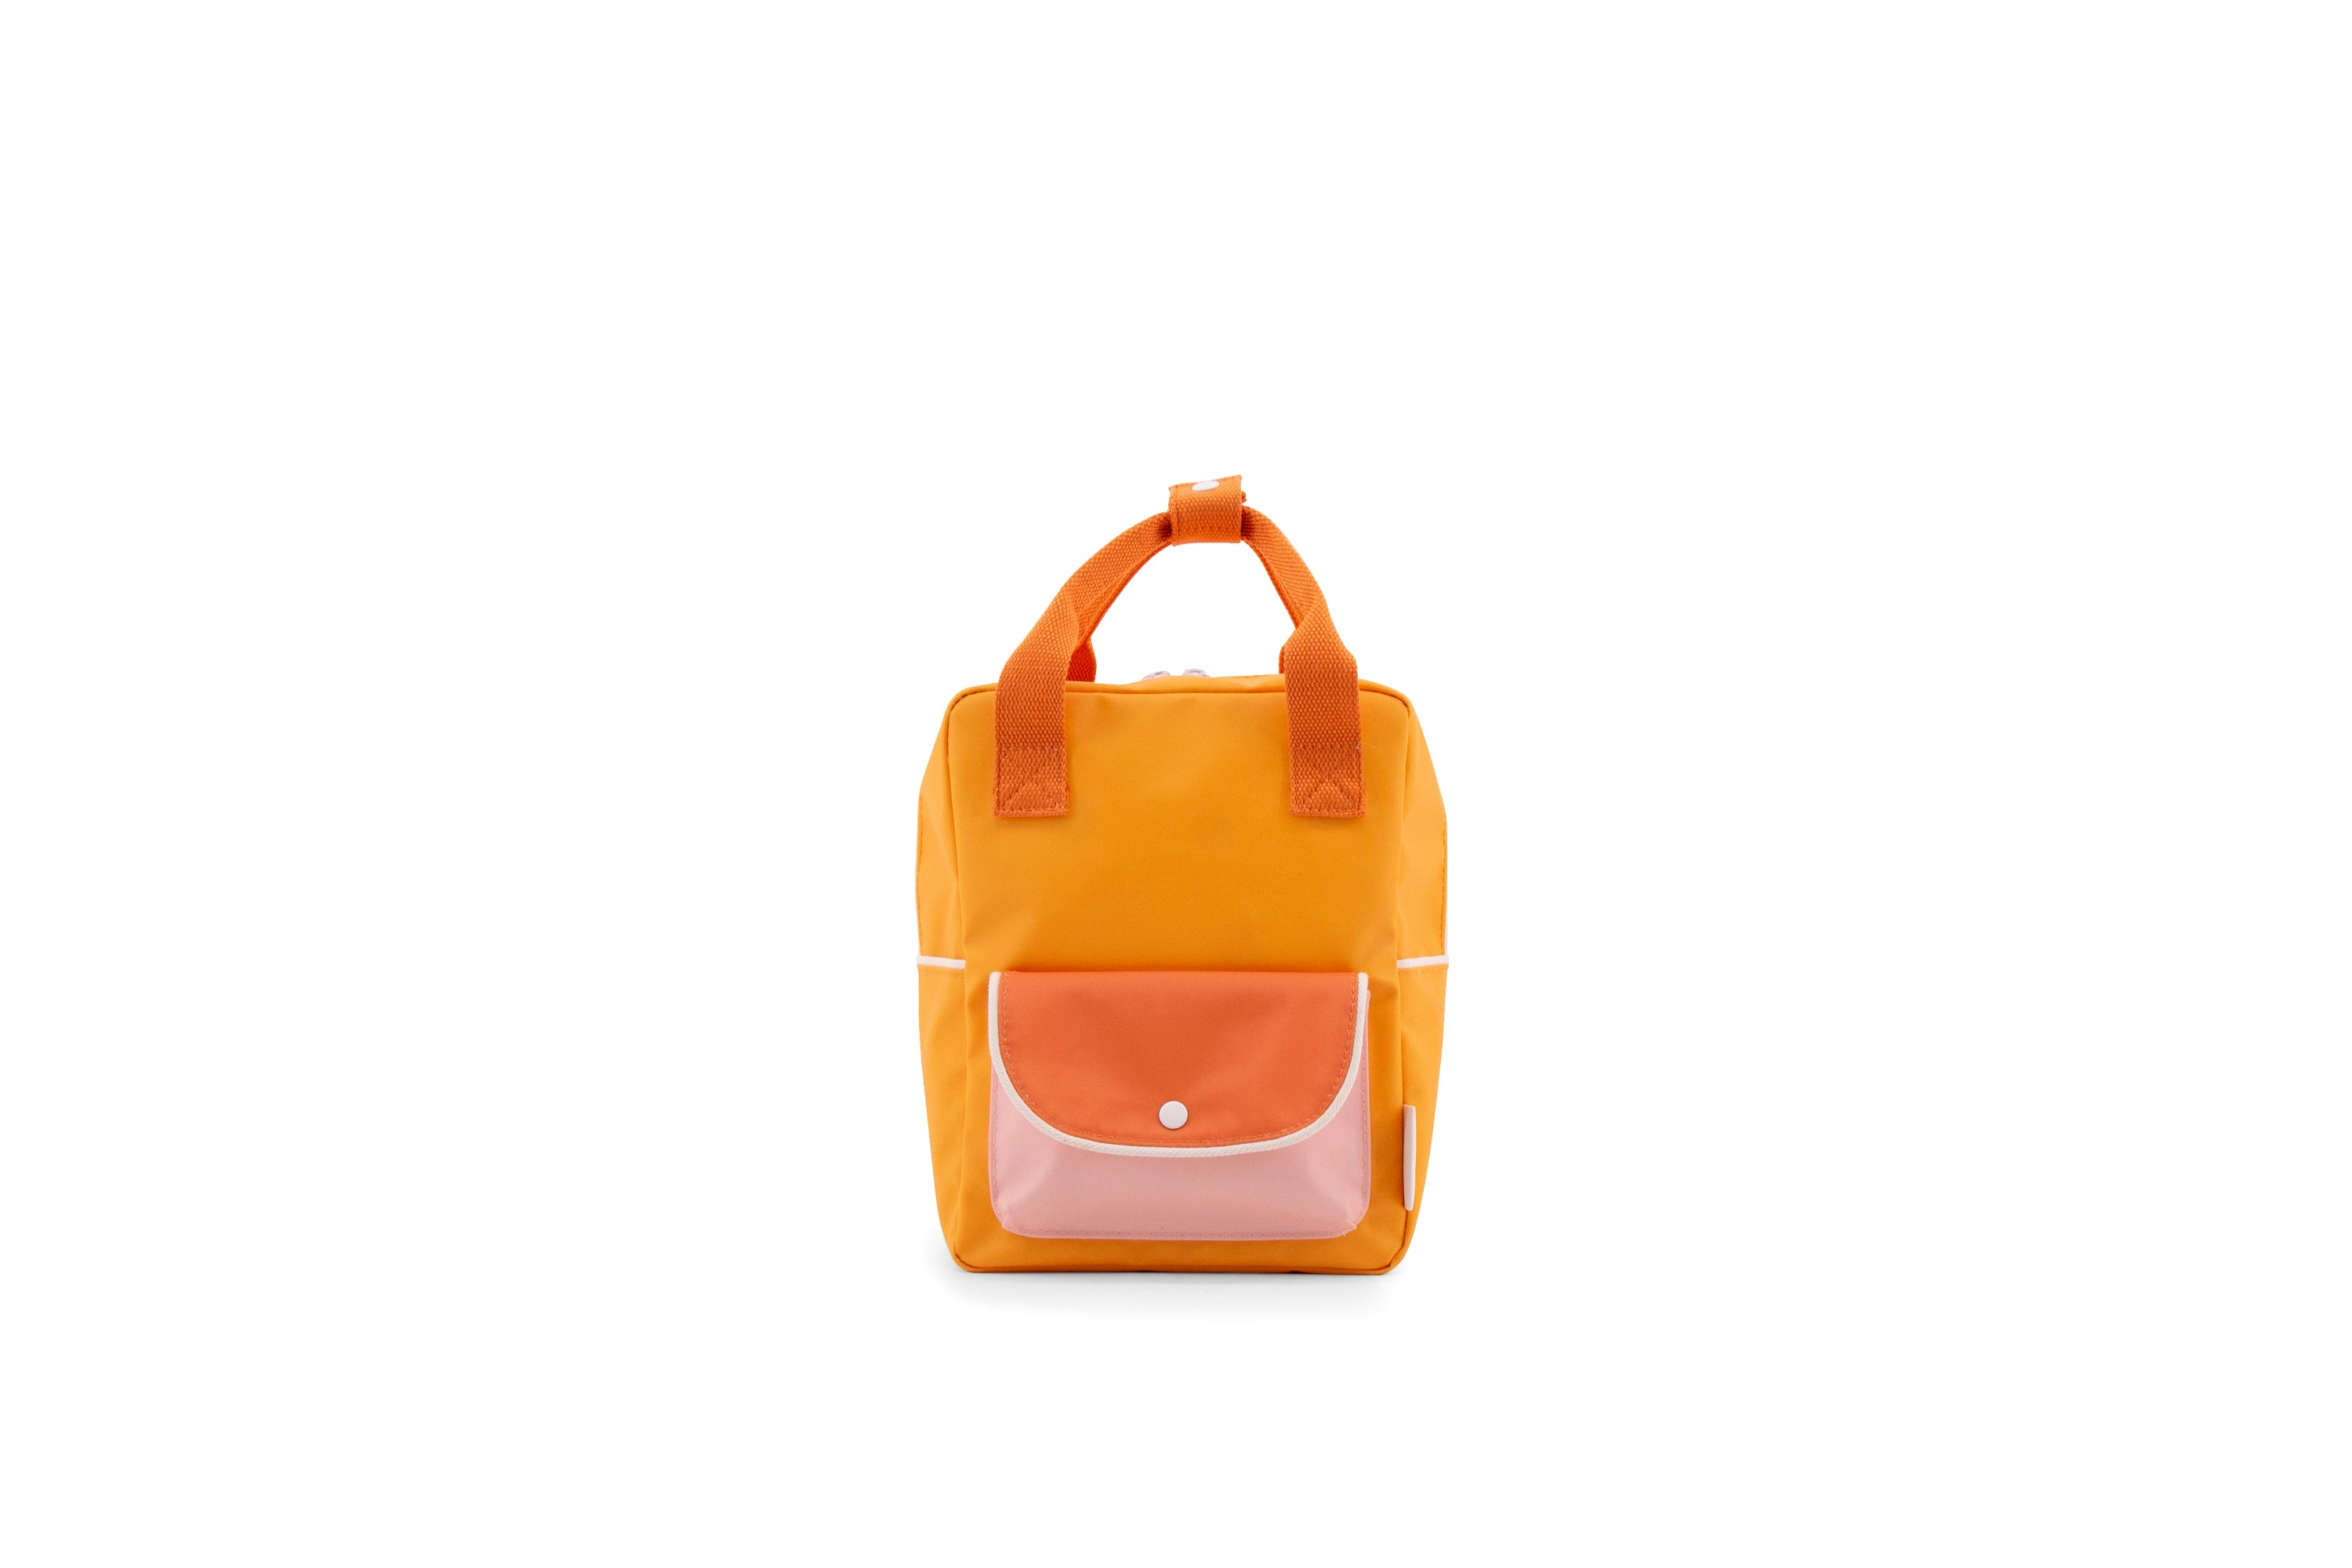 Small backpack  | sunny yellow + carrot orange + candy pink